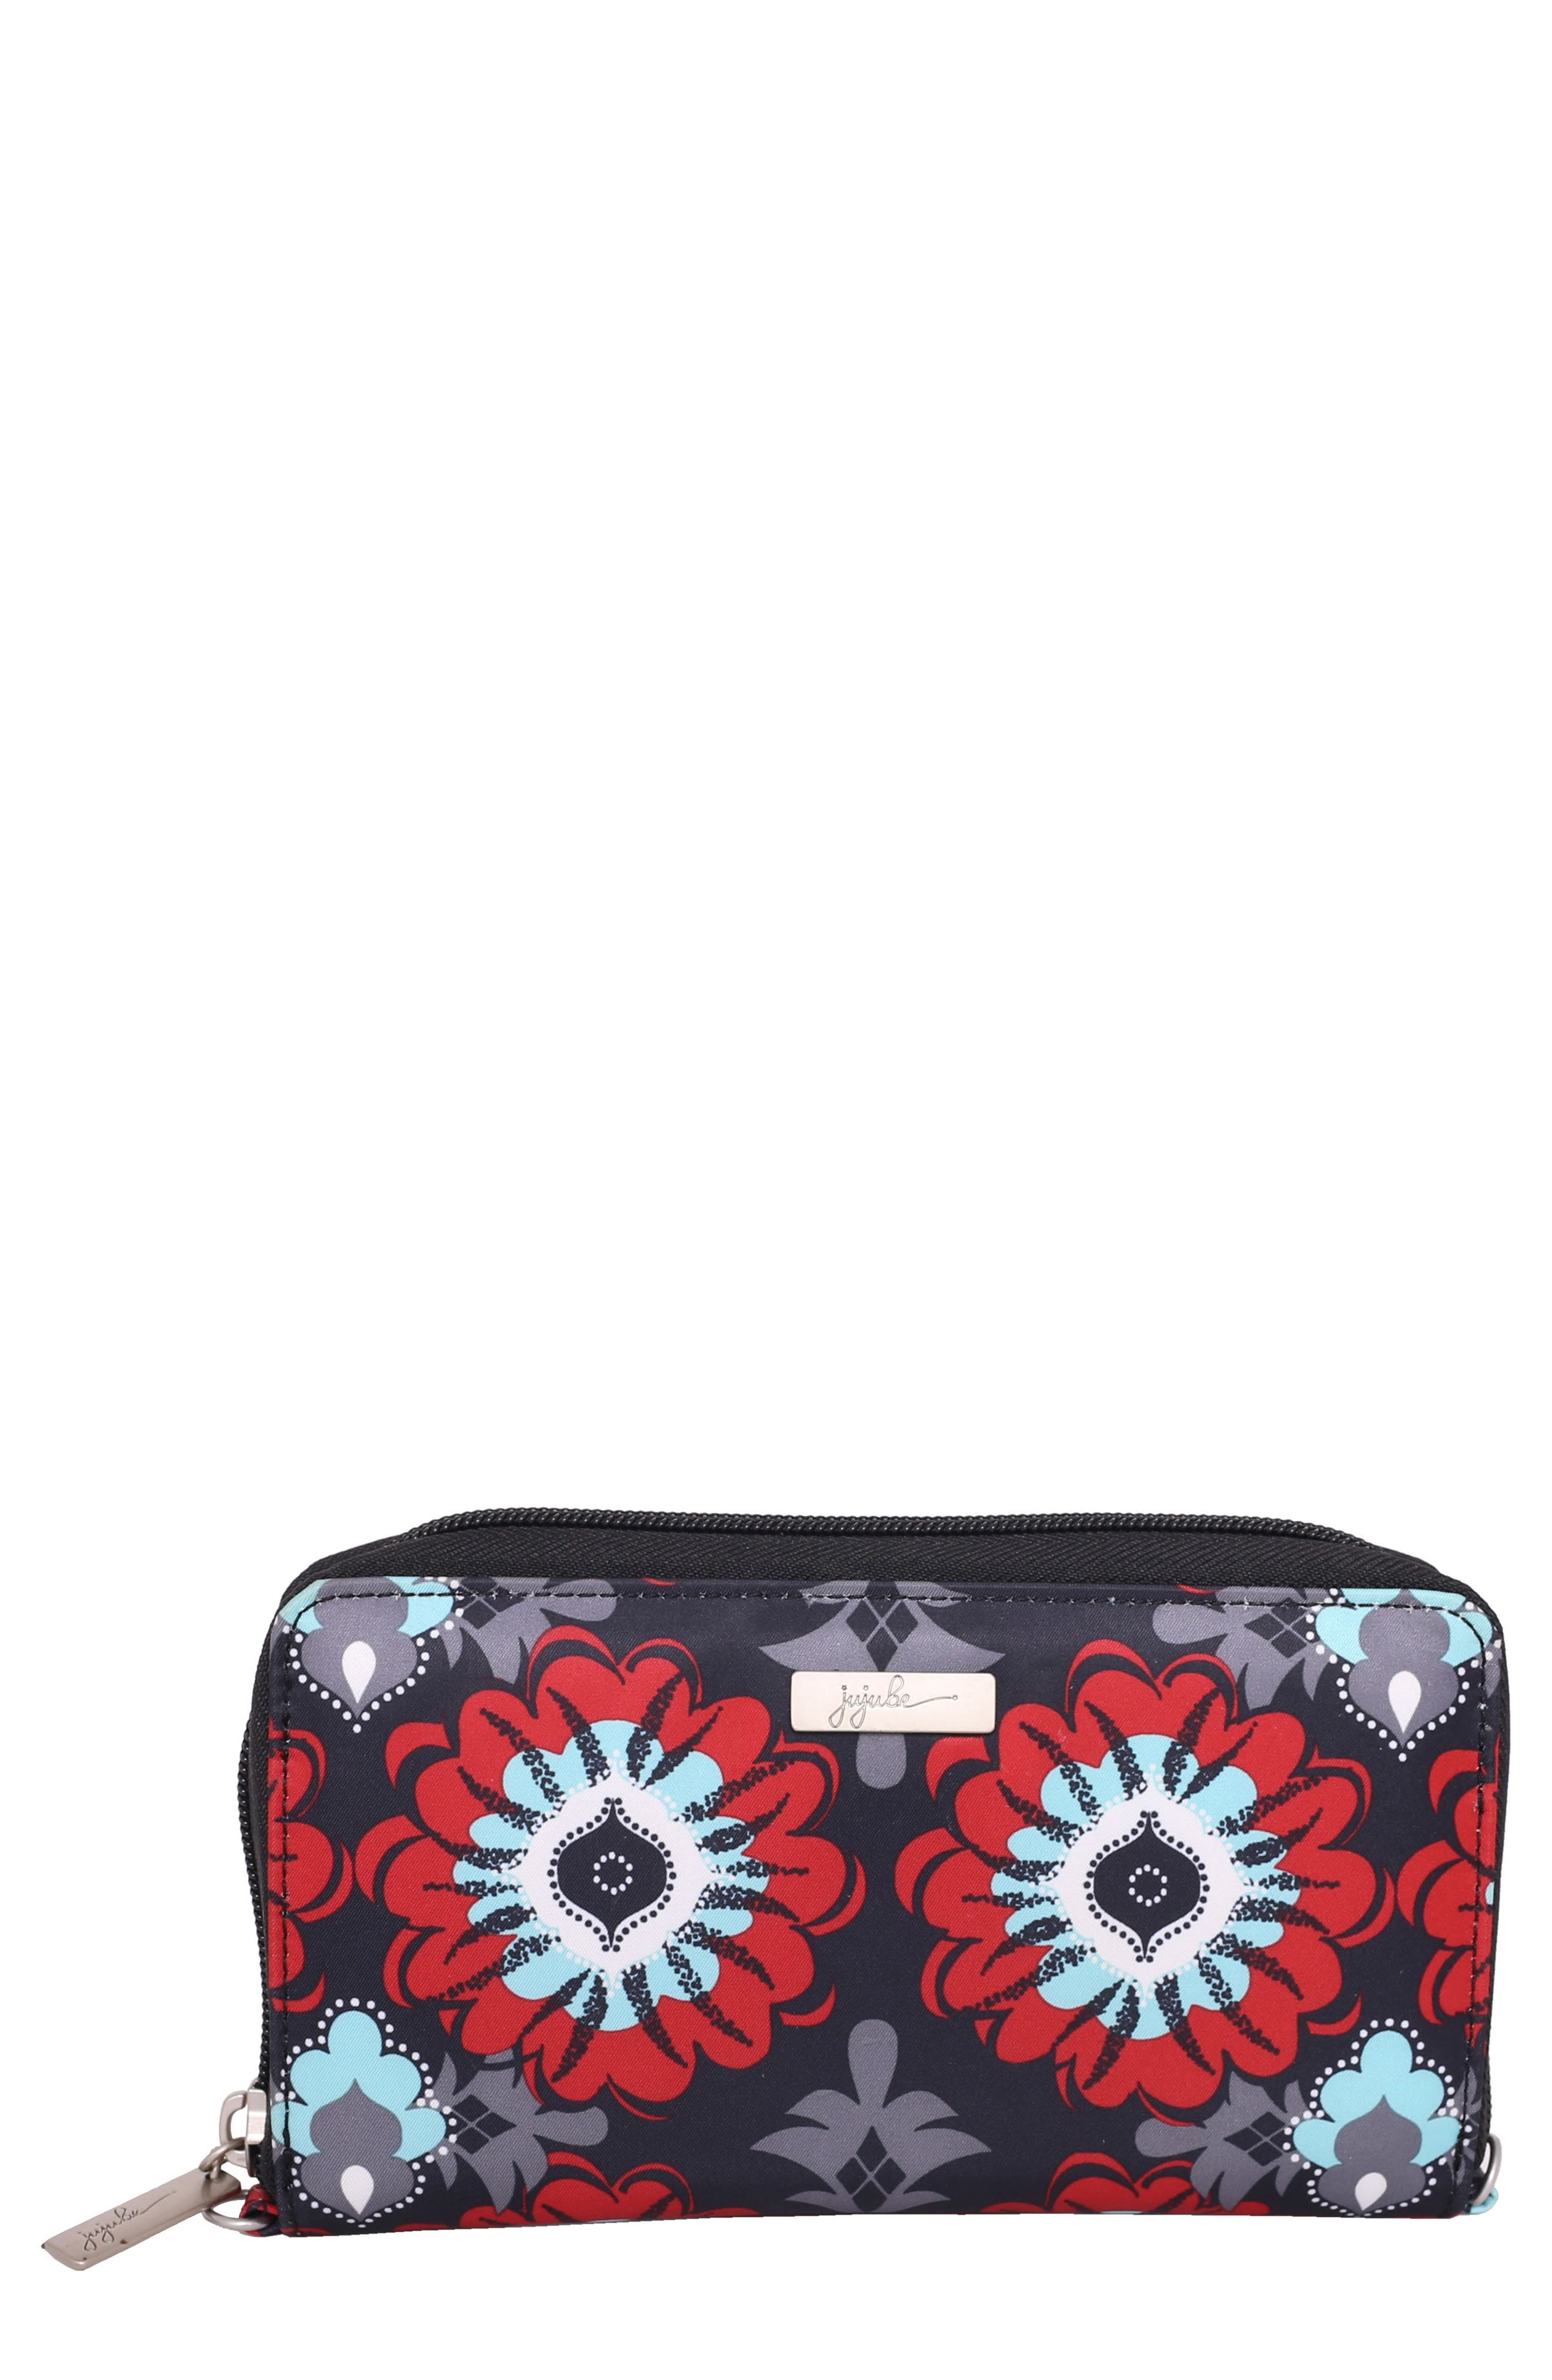 Be Spendy Clutch Wallet,                             Alternate thumbnail 2, color,                             006